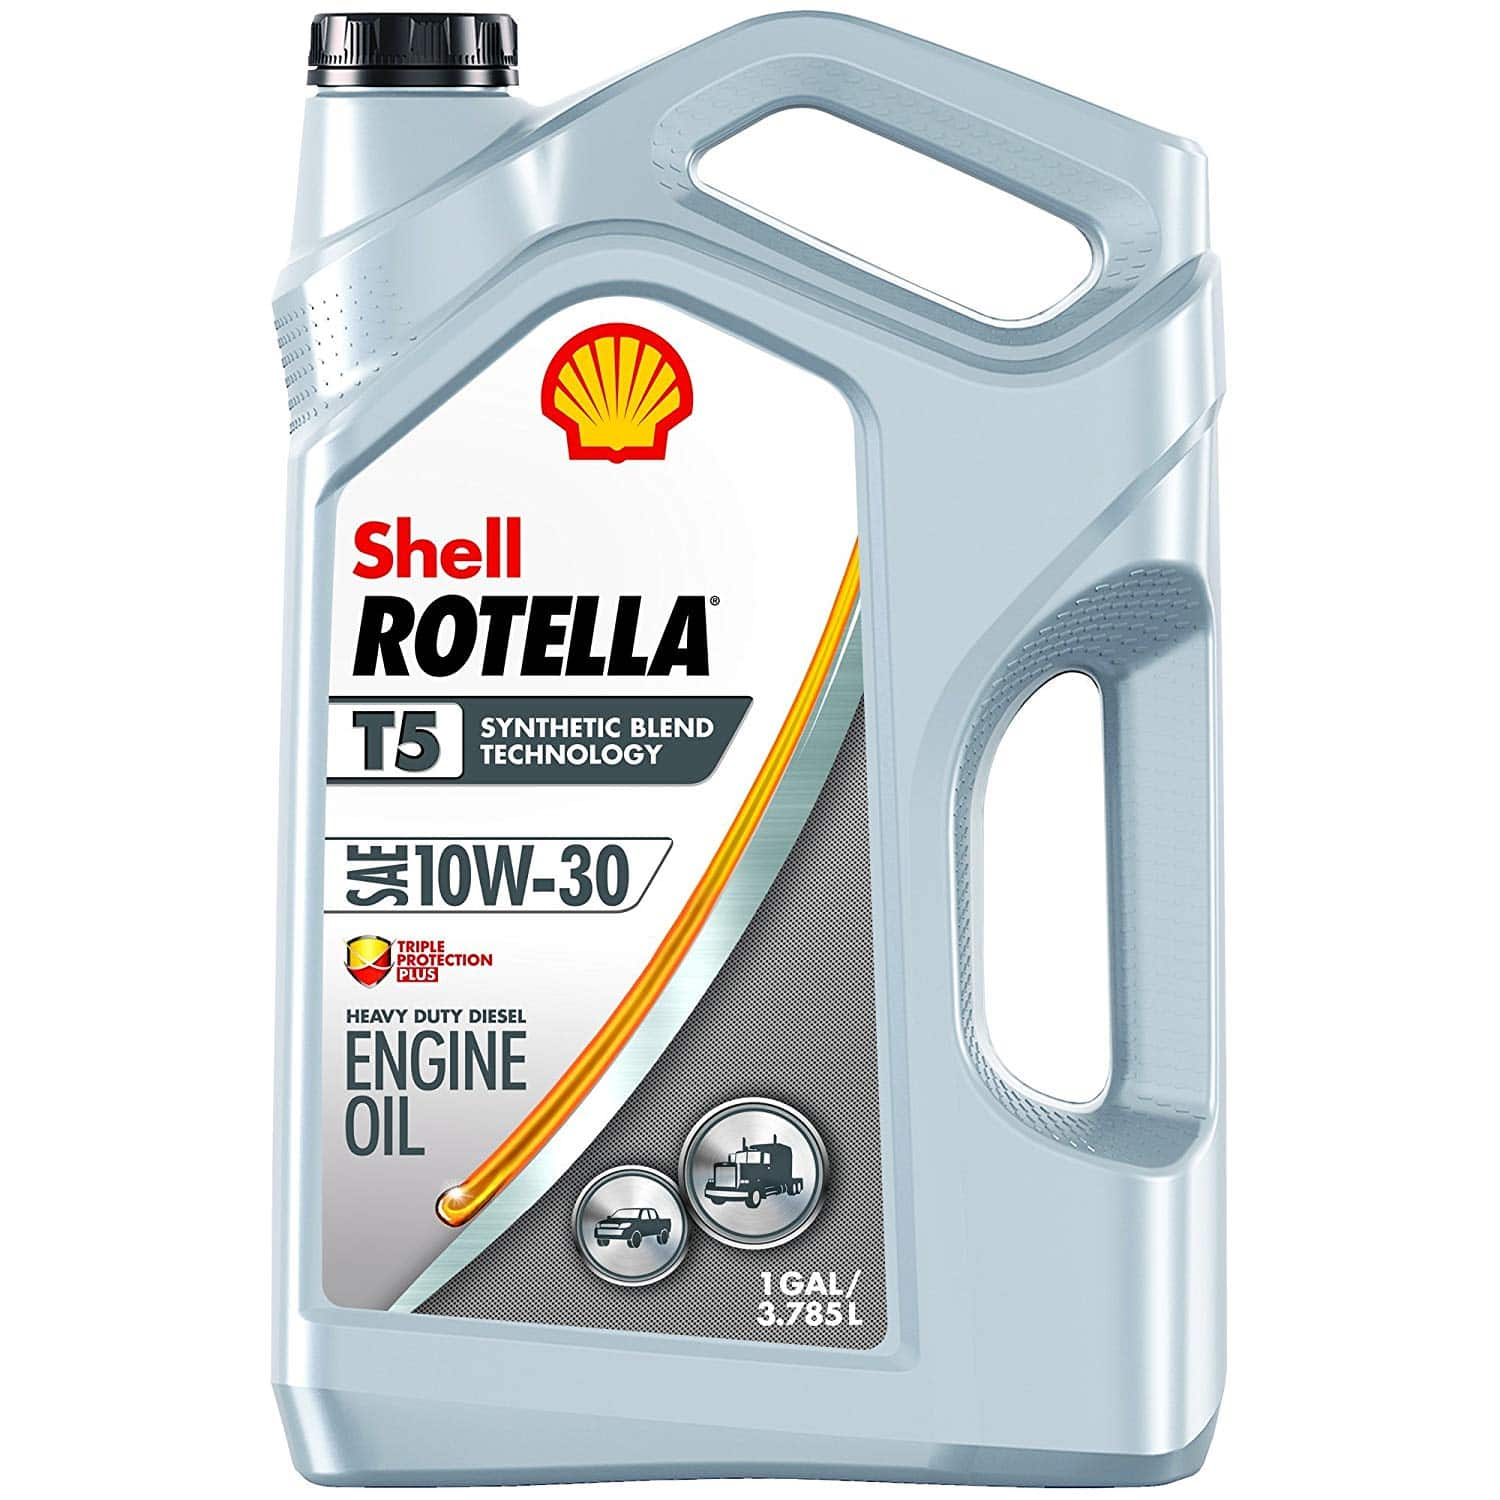 1-gal. Shell Rotella T5 Synthetic Blend 10W-30 Diesel Engine Oil $14.30 w/ S&S + Free Shipping